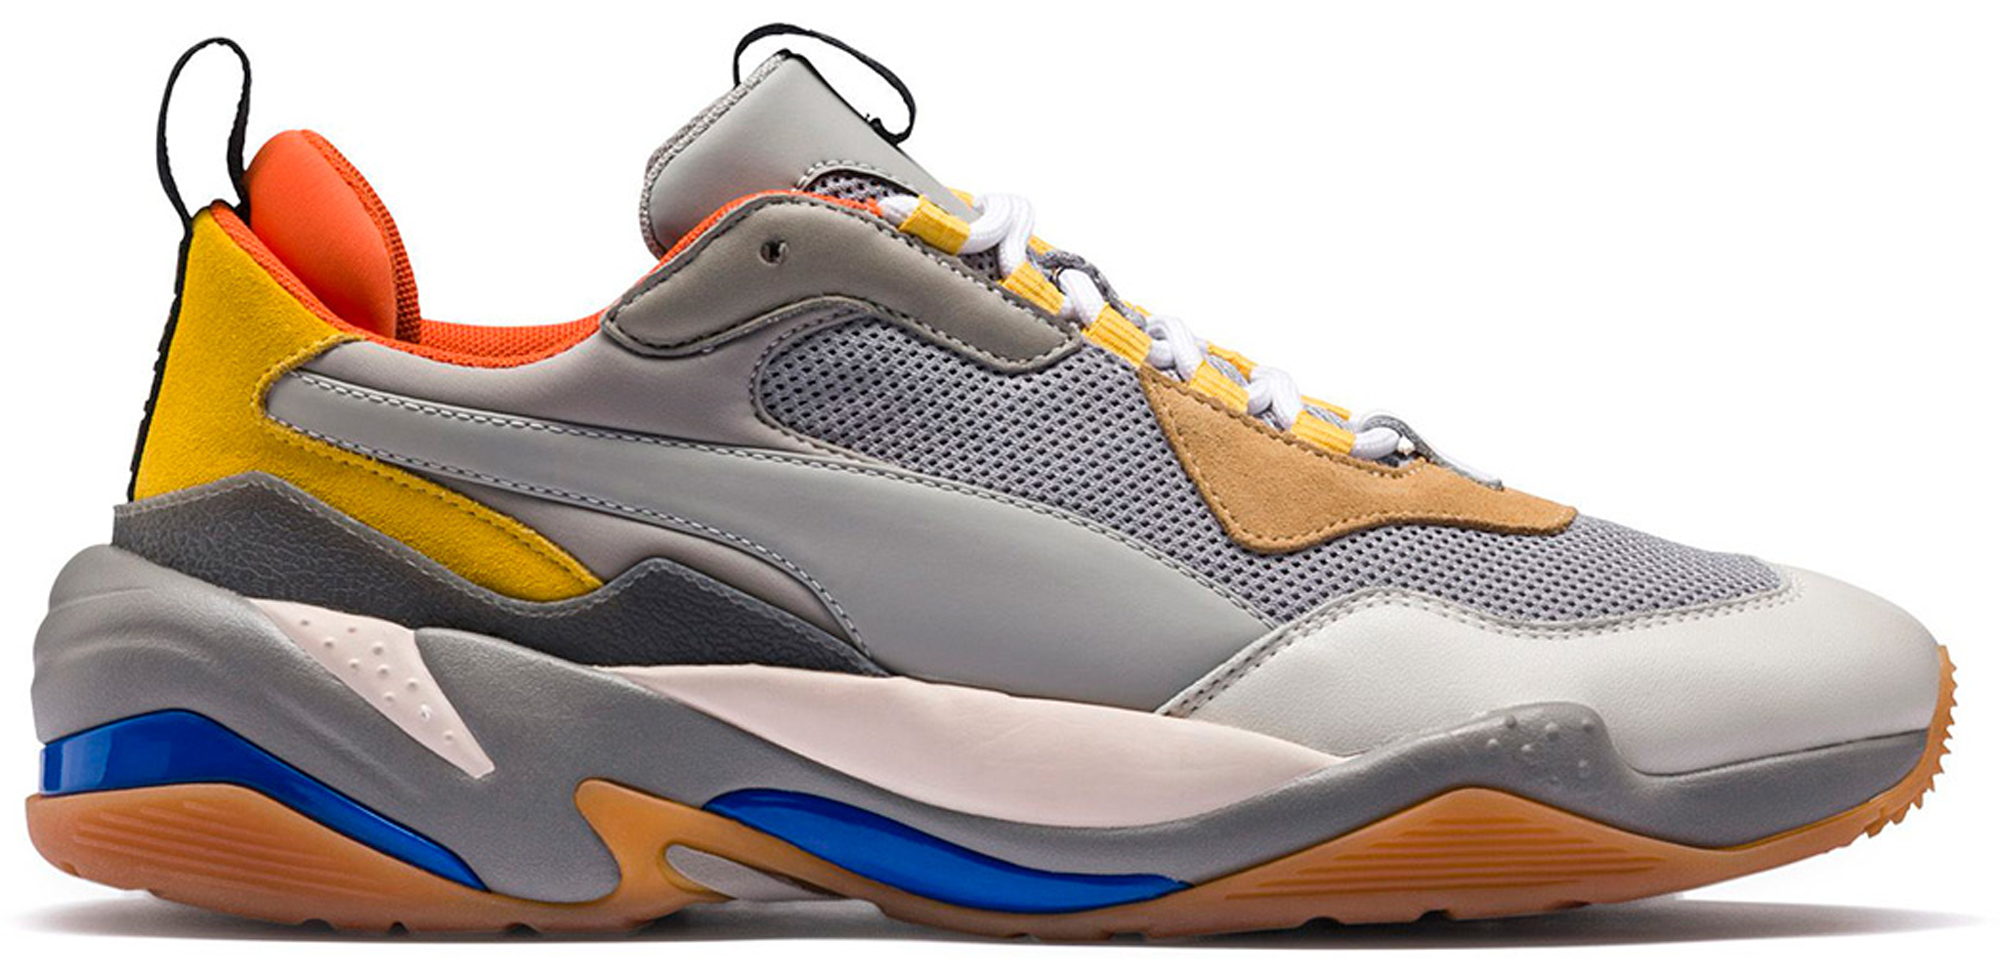 8a235febb0223 promo code for puma spectra yellow 50ddb ef937